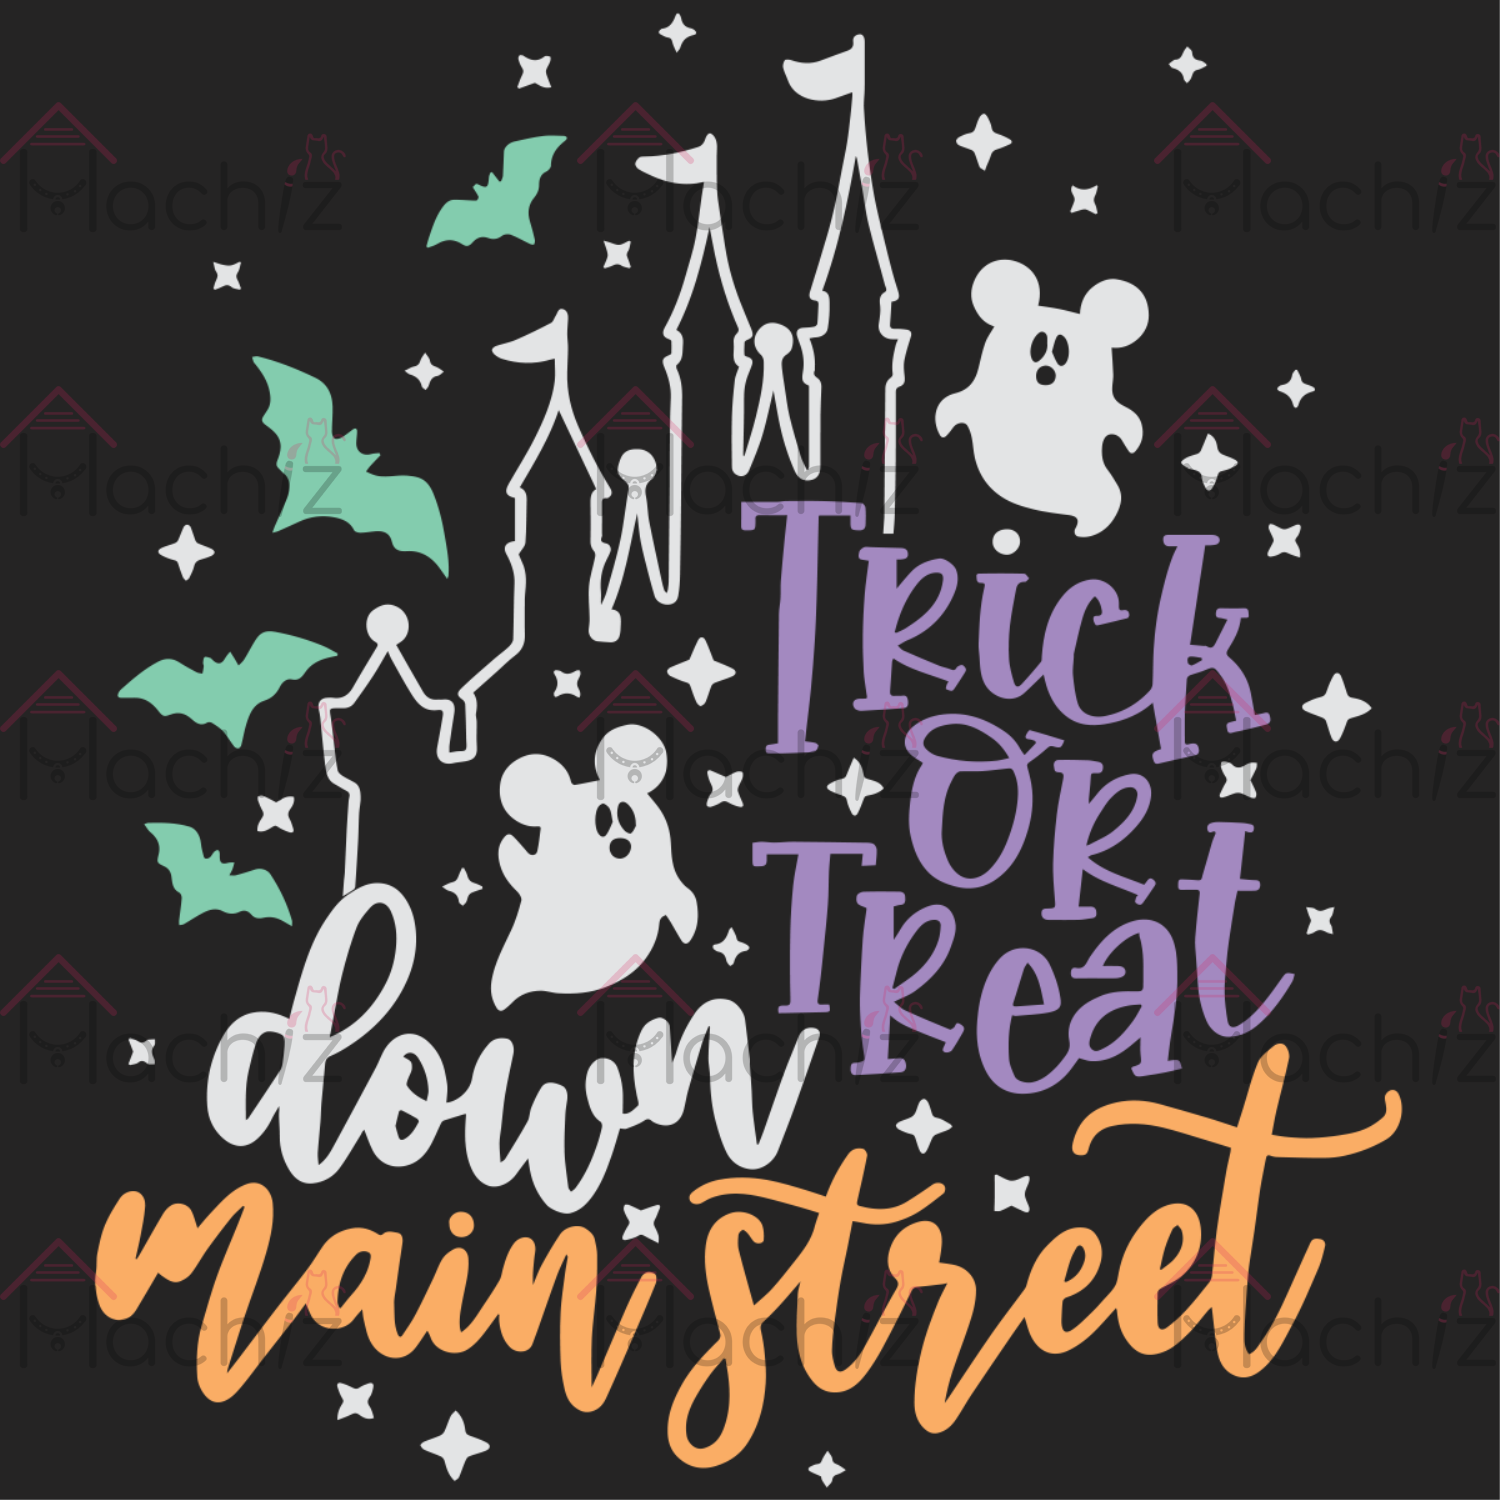 Trick or Treat Down Main Street Svg, Halloween Svg, Disney Halloween Svg, Halloween gift, Halloween shirt, happy Halloween day, Halloween svg file, Halloween party, Funny svg,